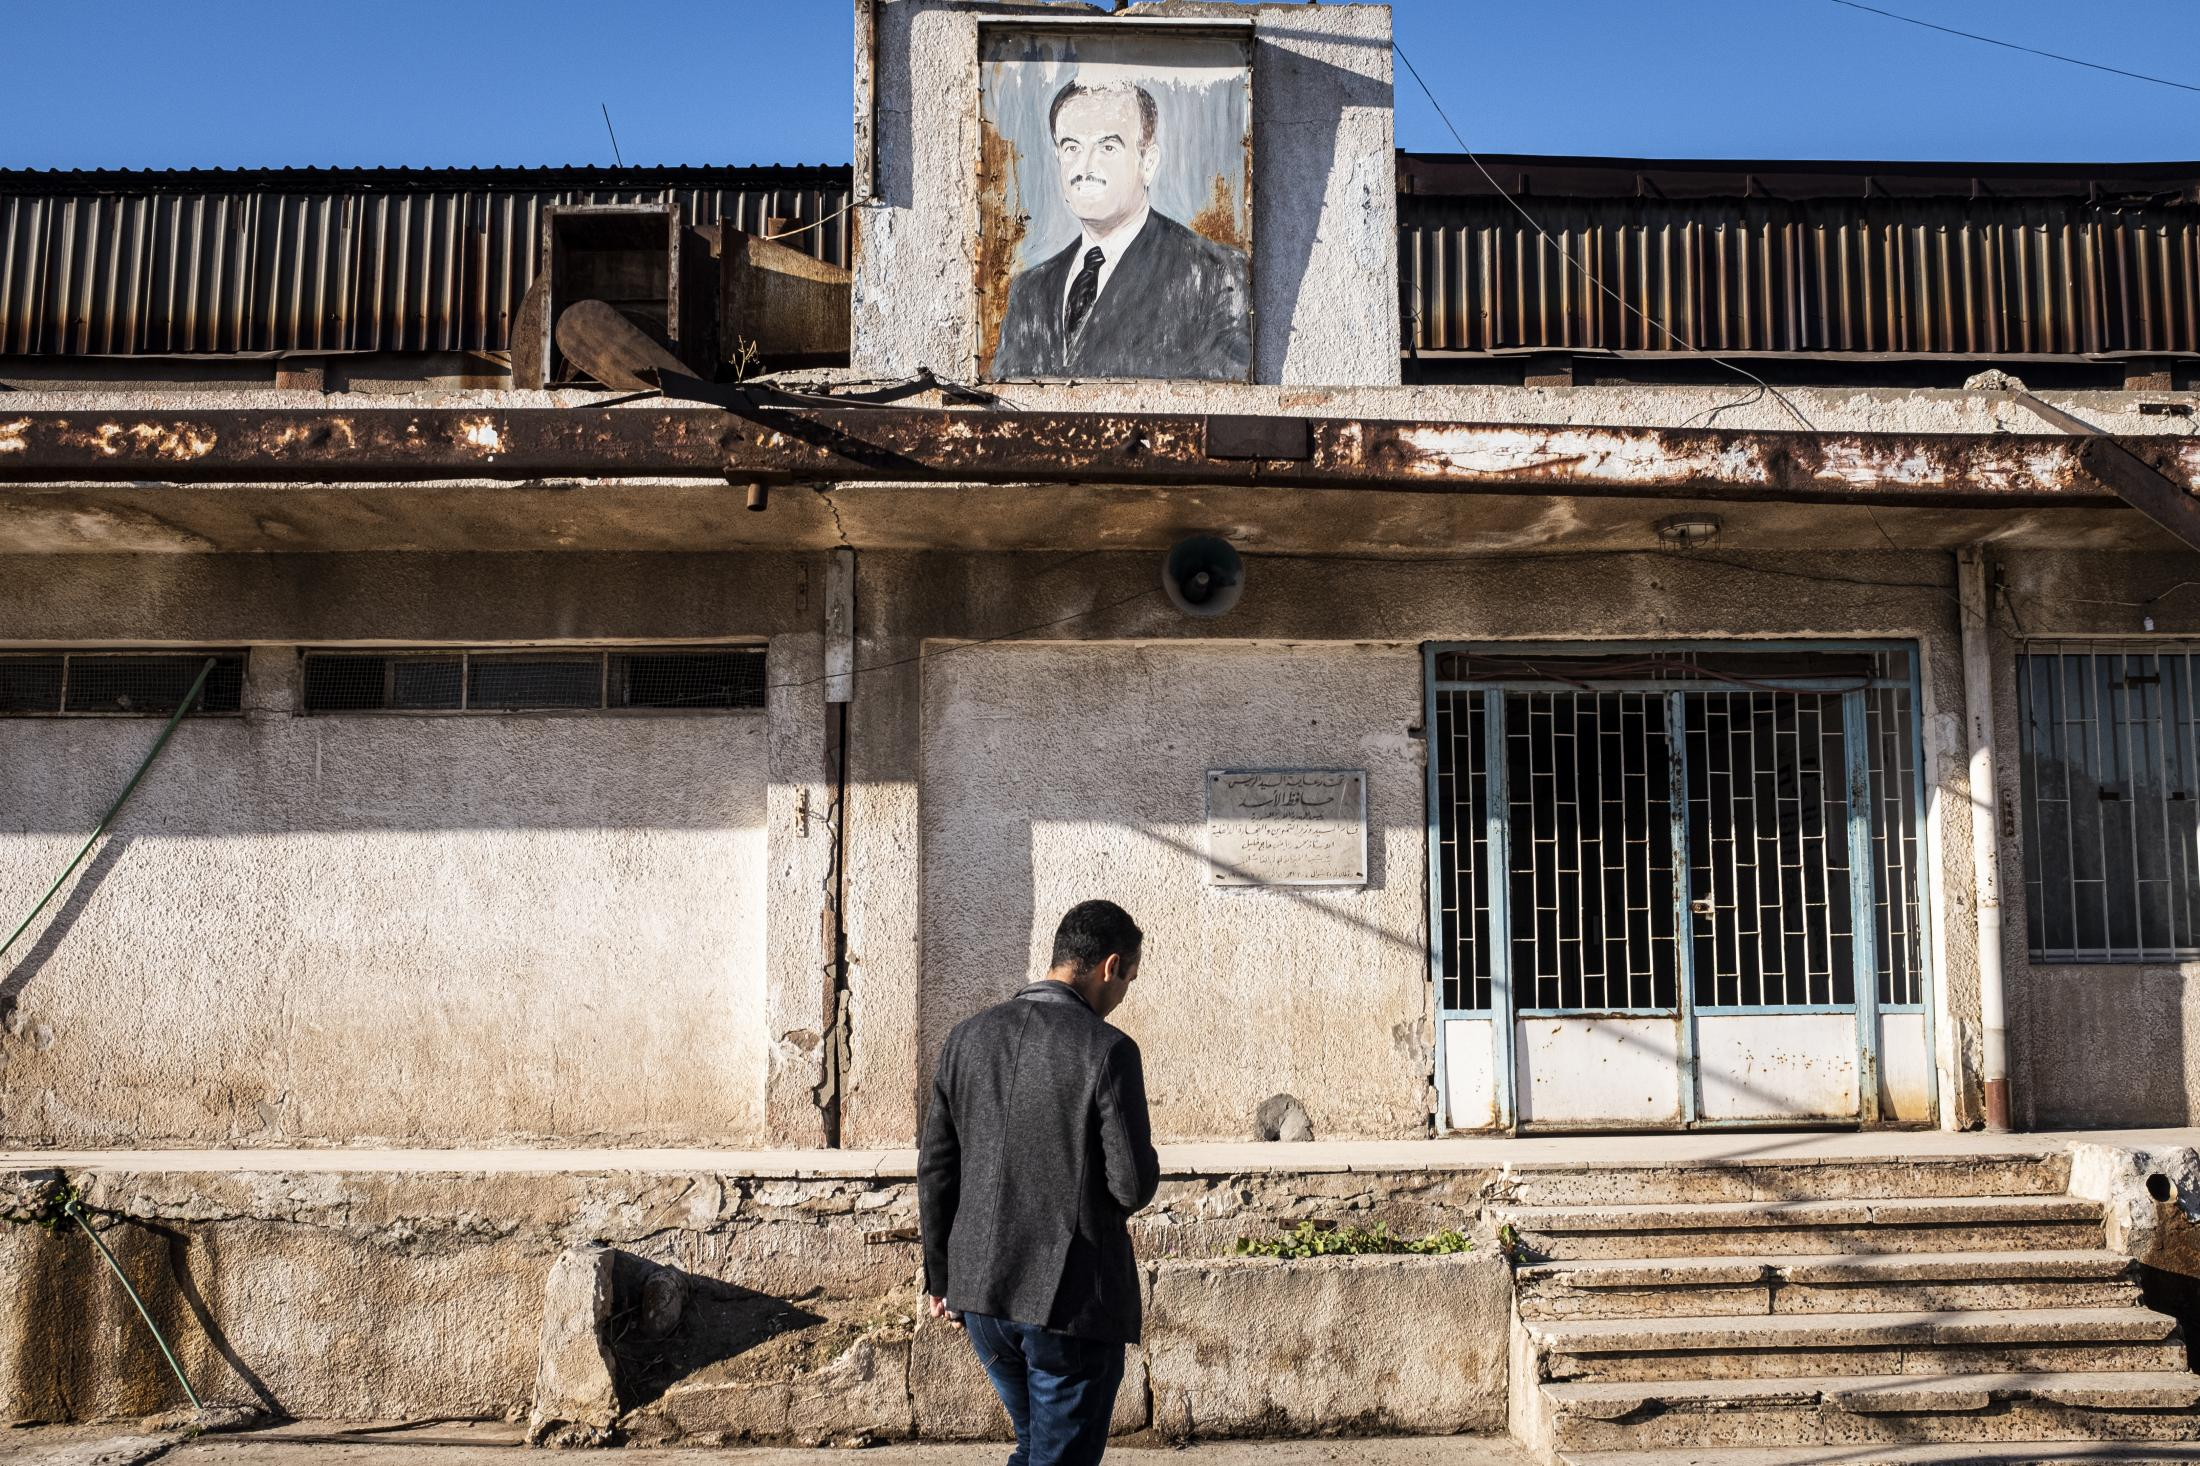 A man passing in front of a building with a Haffez Al Assad portrait. After the withdrawal of US troops from northern Syria in October 2019, Turkey launched an offensive against the predominantly Kurdish areas in the northeast of the country along Islamist forces. Calls for war crimes investigations into the conduct of Ankara-backed militias are mounting ever since. (Andoni Lubaki / Euskal Fondoa)